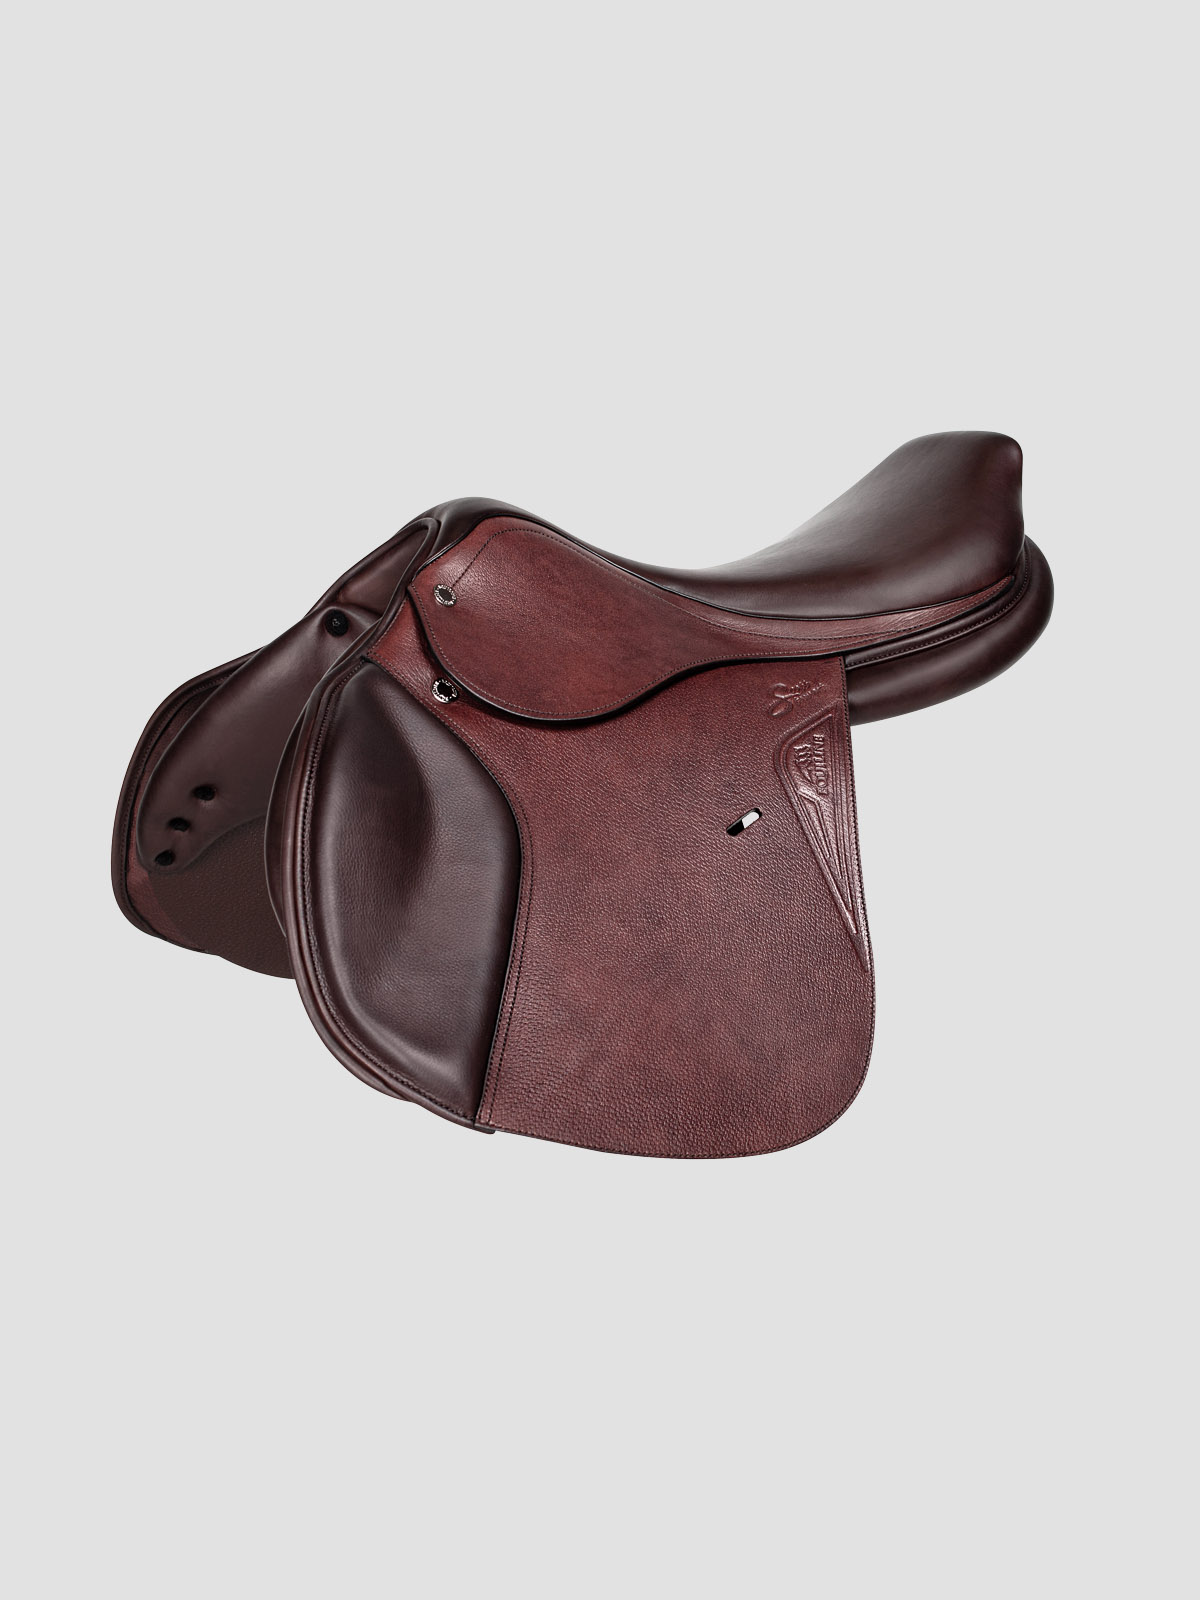 Scott Stewart Signature Hunter Saddle 1